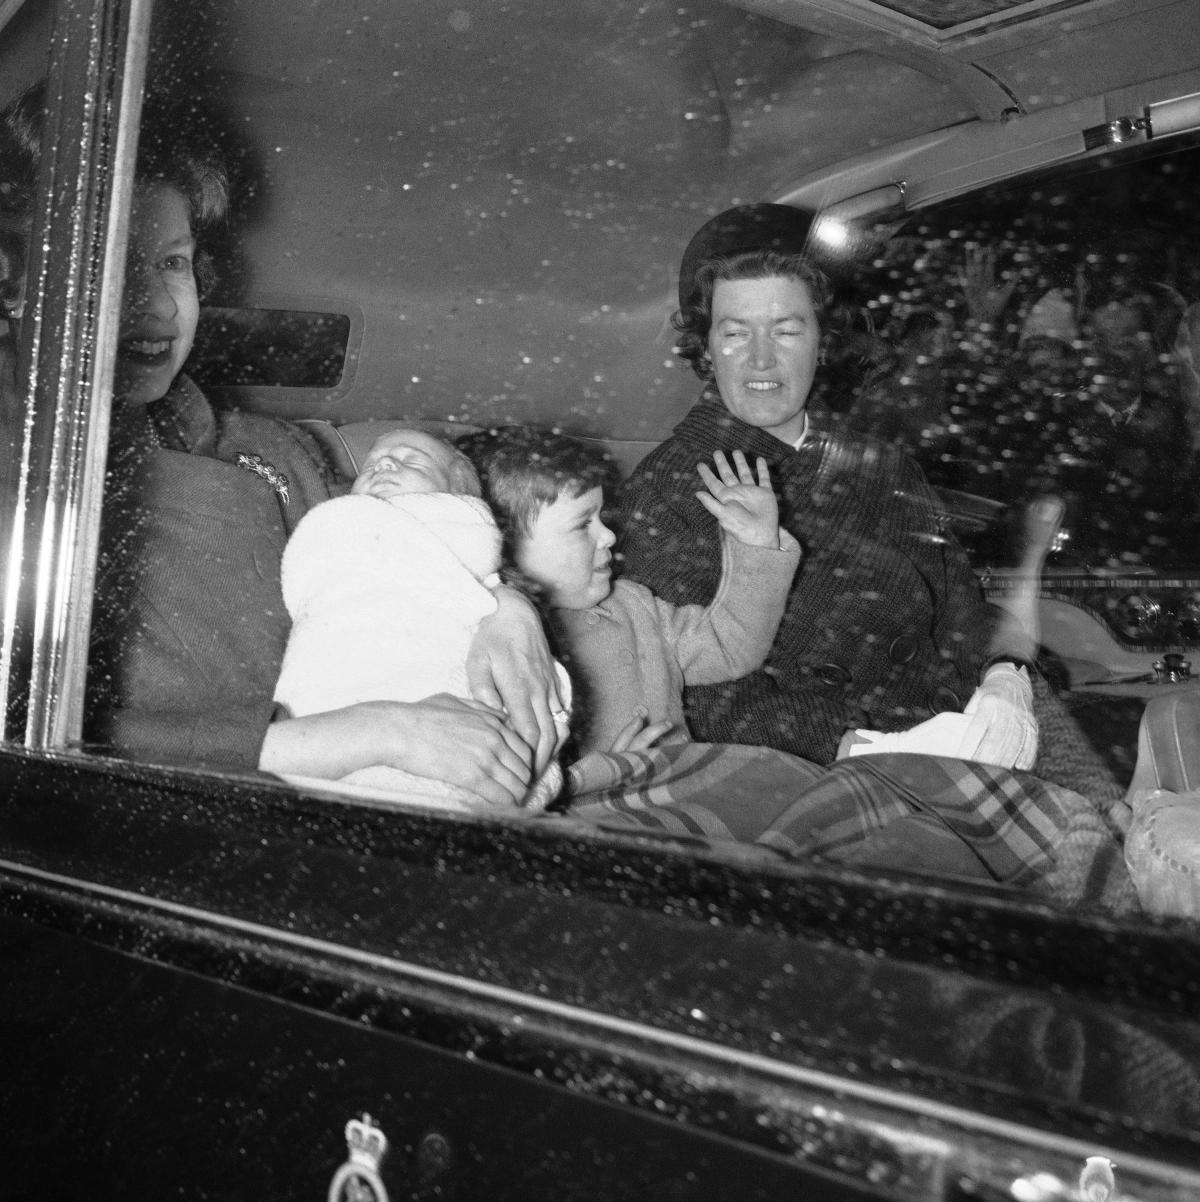 Queen Elizabeth II holds her fourth child, Prince Edward, as they head to Windsor Castle with Prince Andrew in 1964.